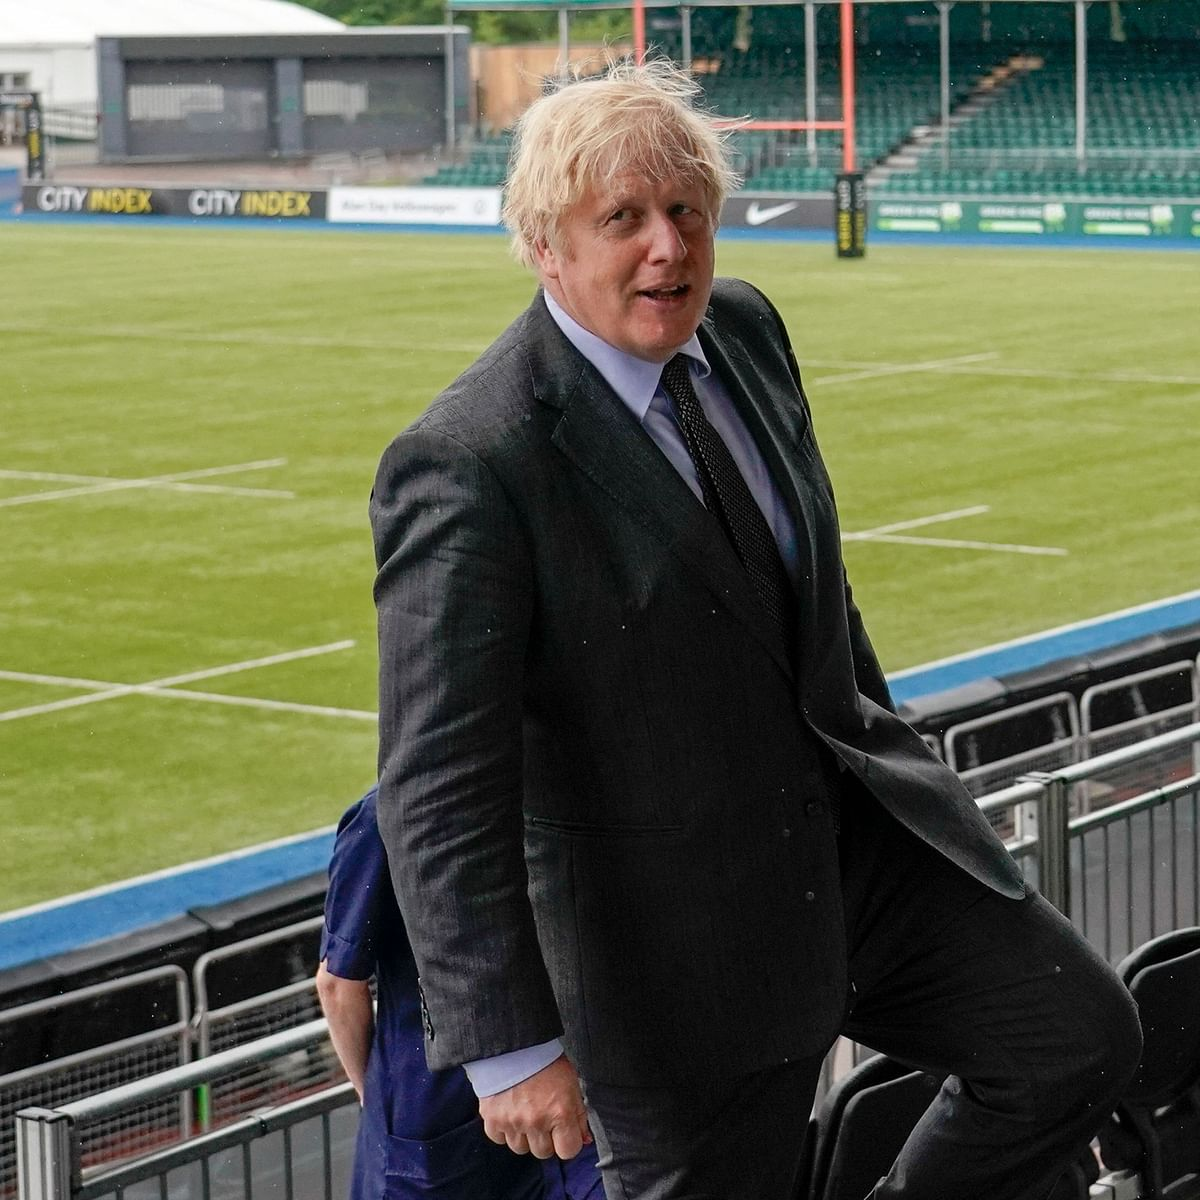 'England team deserve to be lauded as heroes': PM Boris Johnson slams 'appalling' racial abuse after Euro 2020 loss